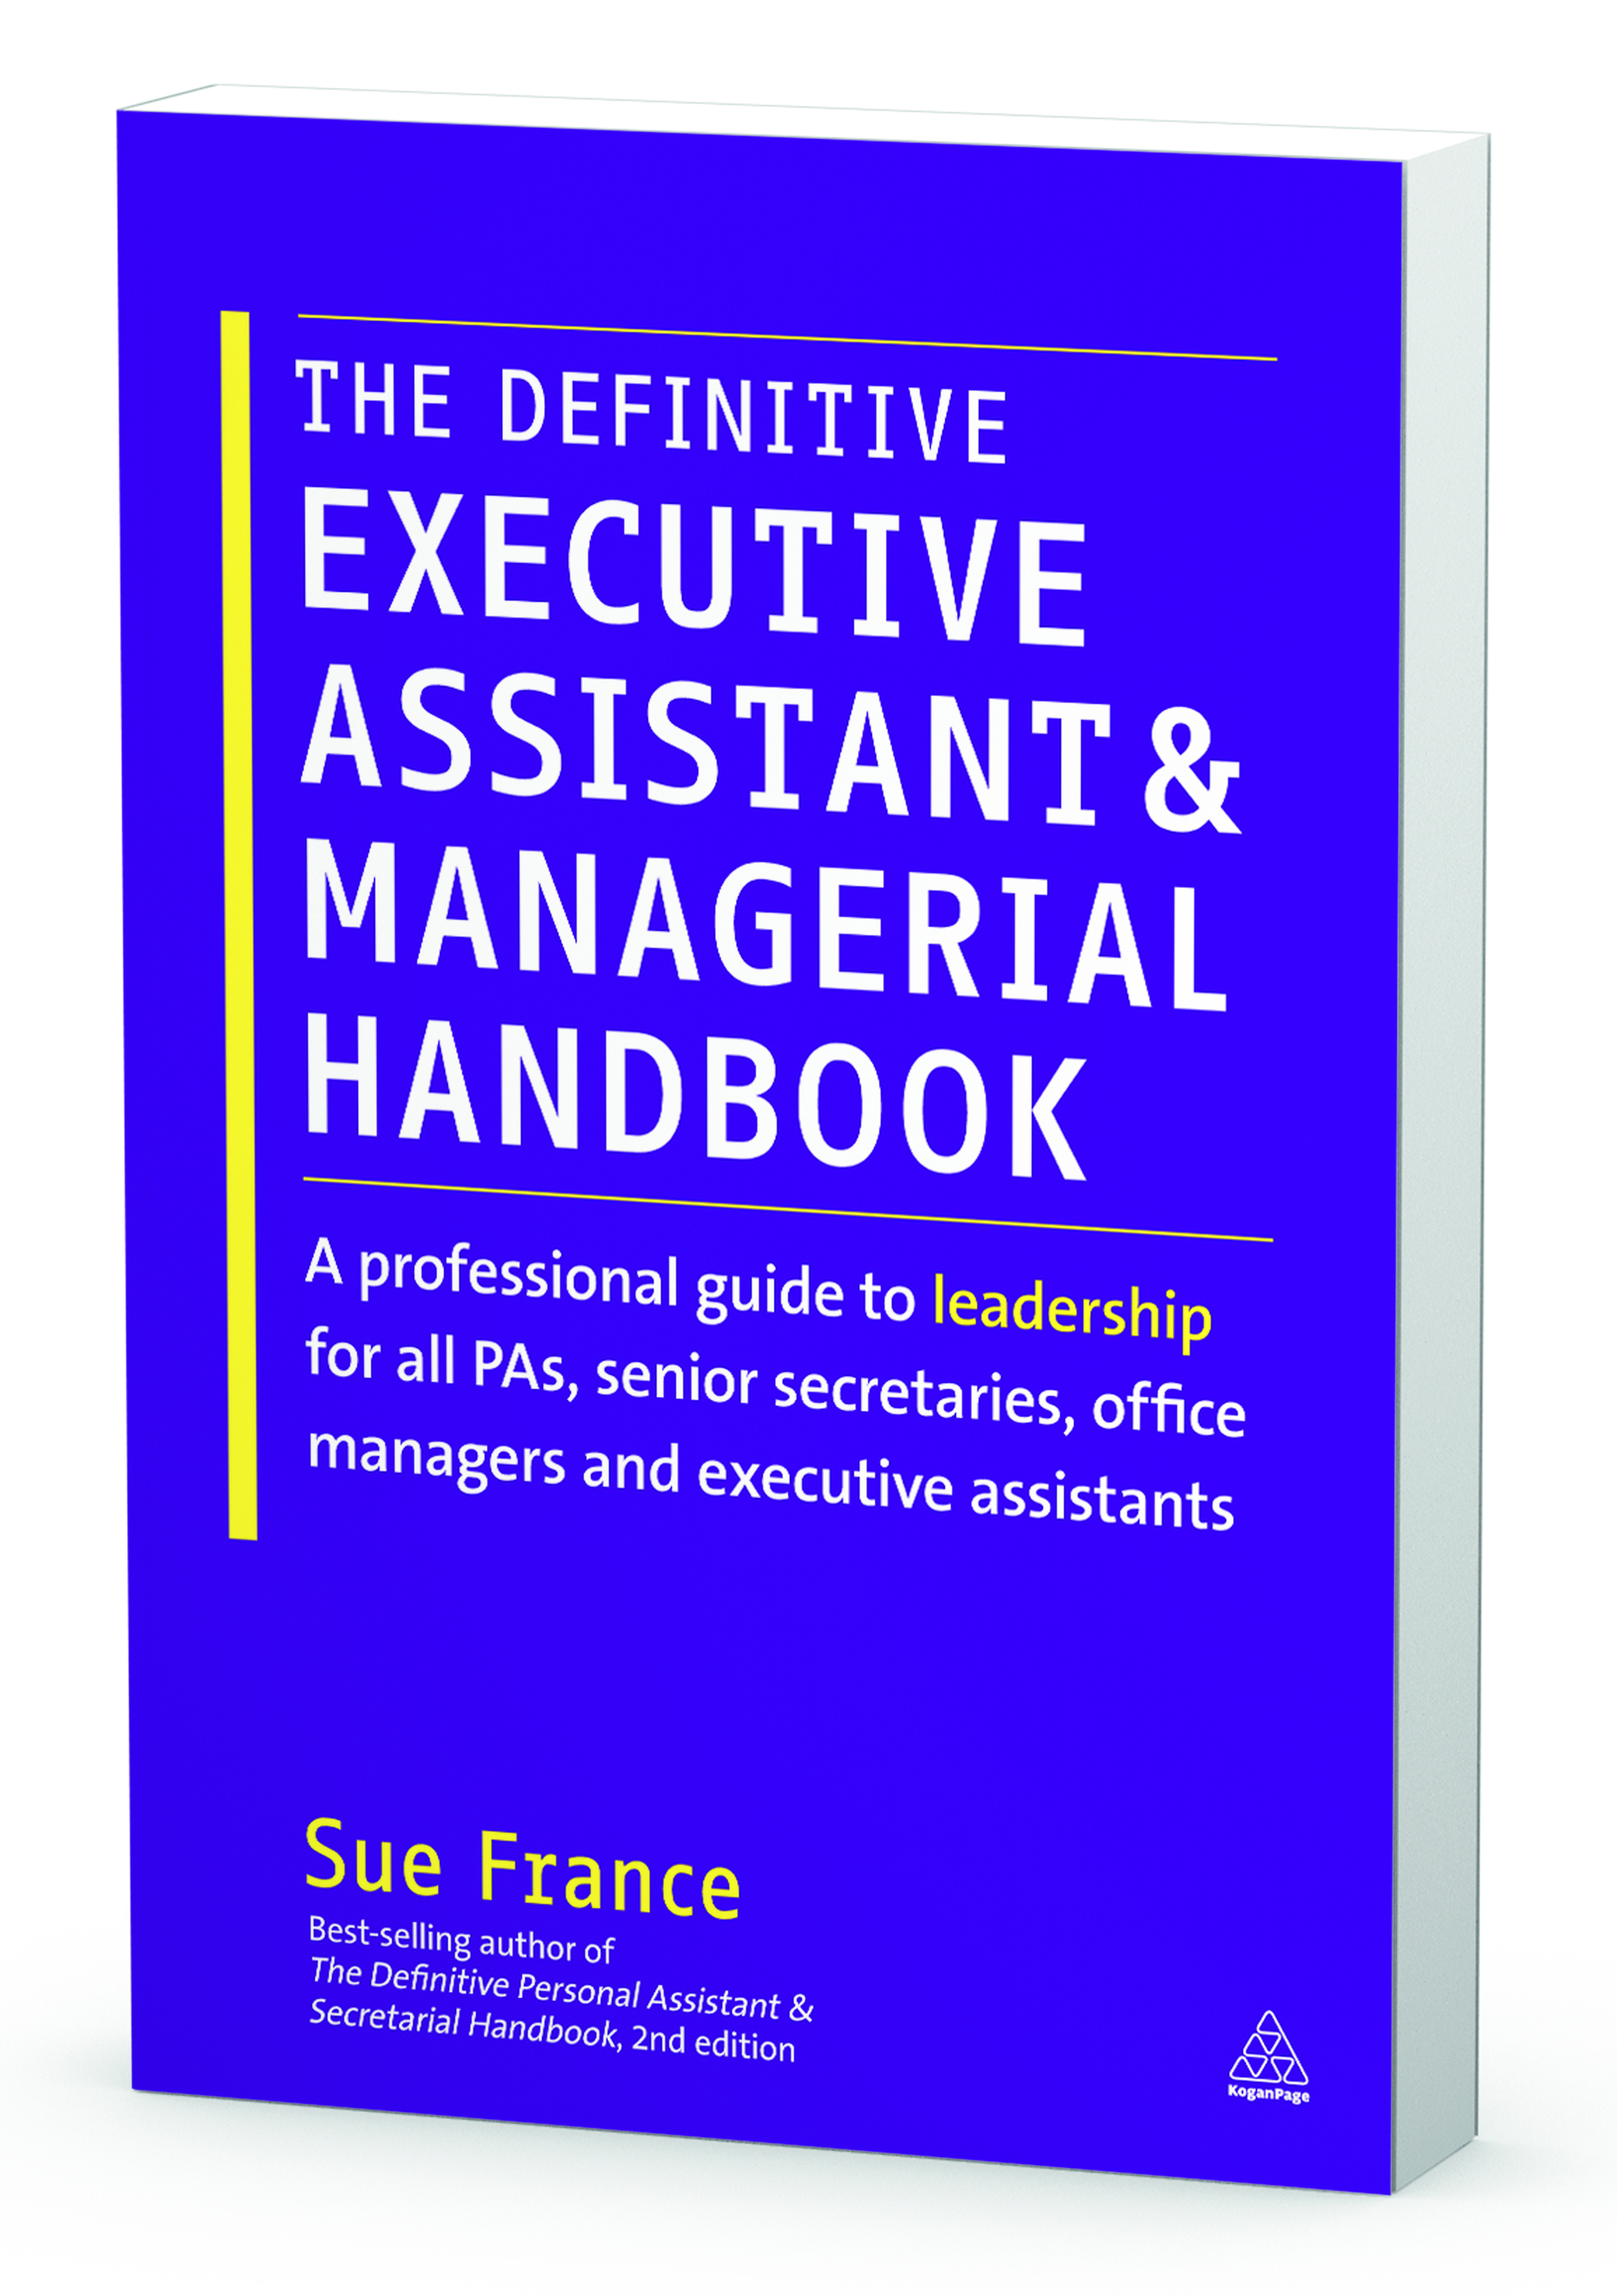 The Definitive Executive Assistant & Managerial Handbook